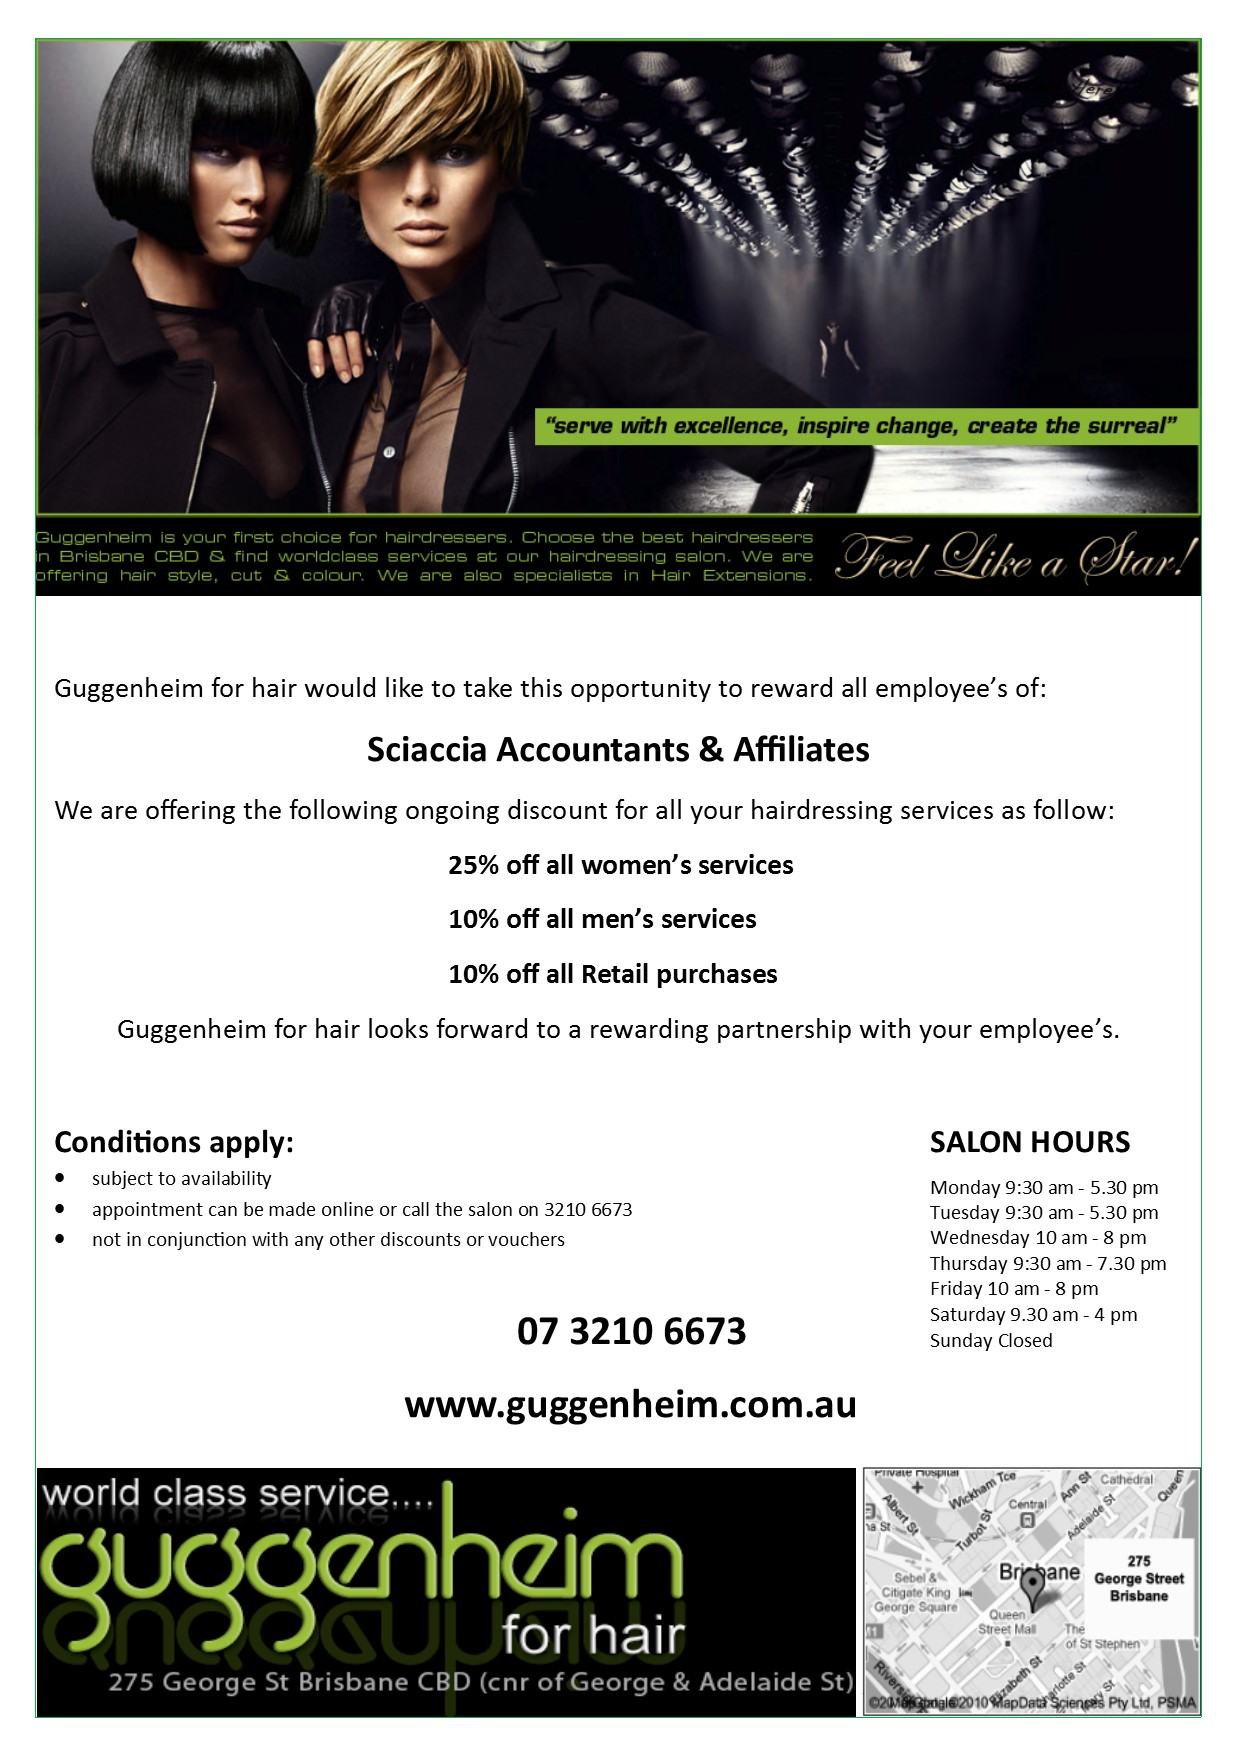 Email Flyer for Sciaccia Accountants & Affiliates